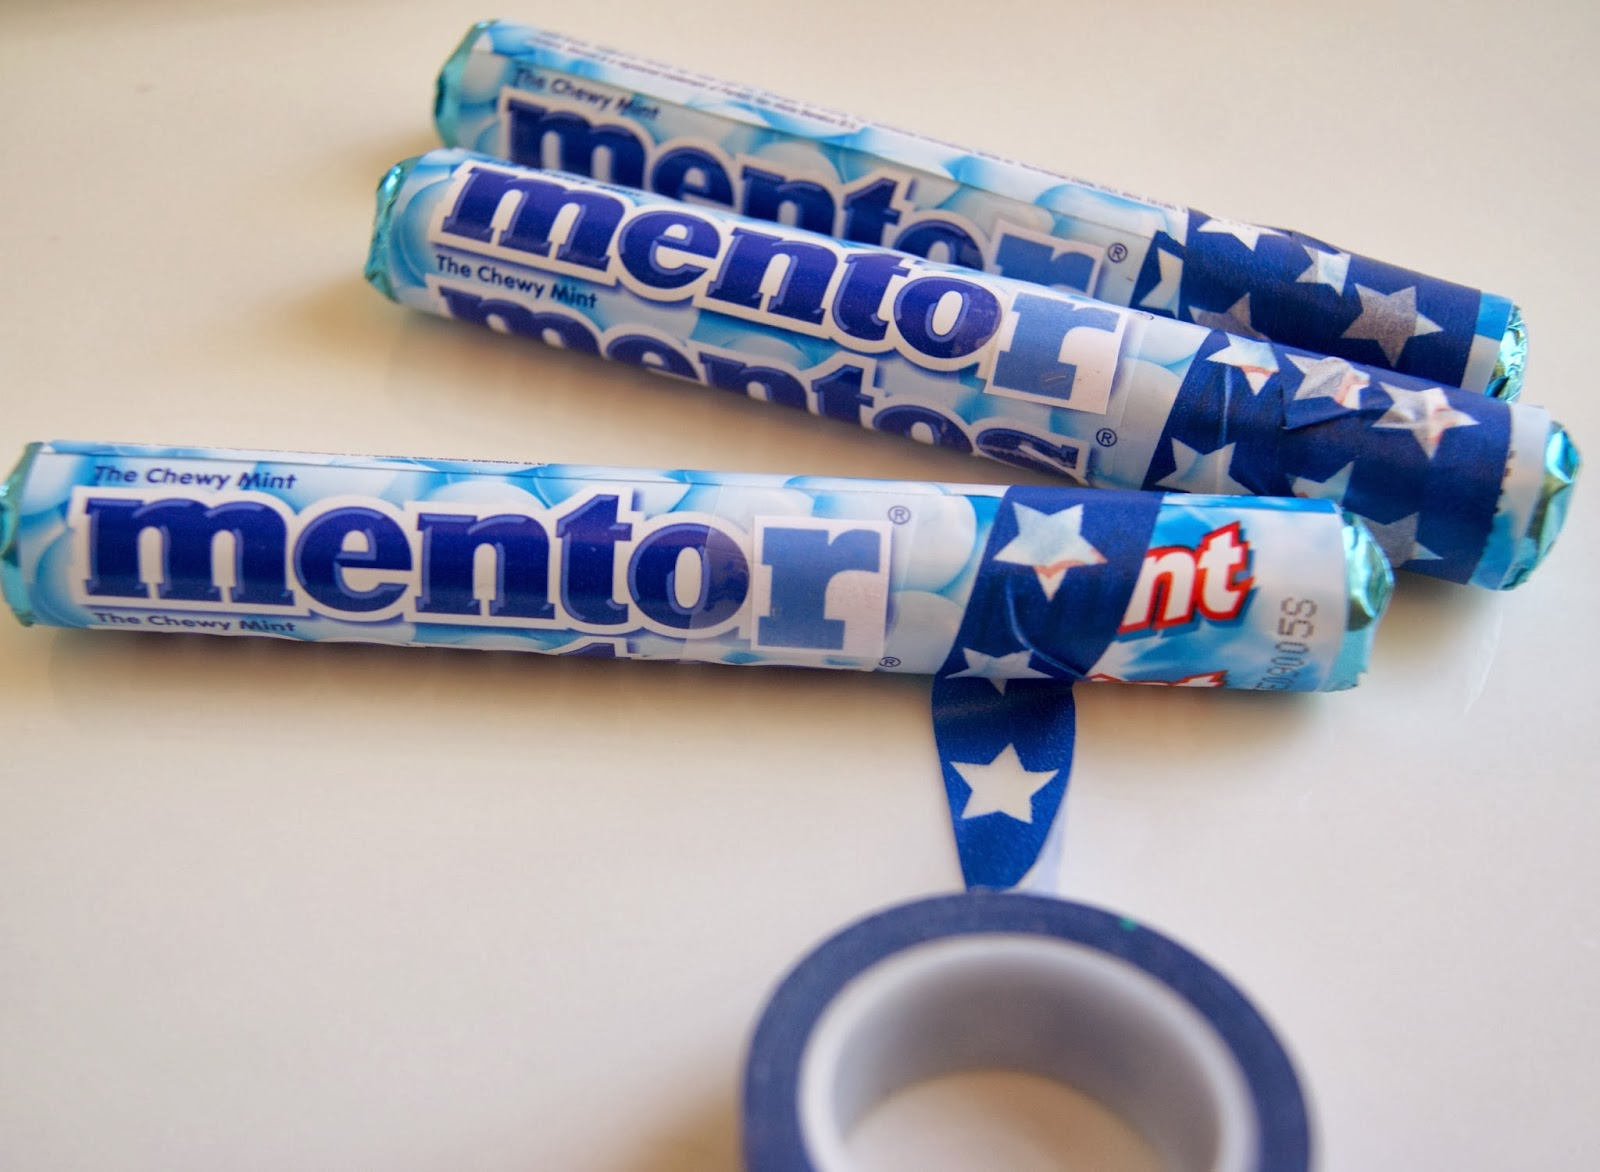 michelle paige blogs: mentos thank you for a mentor